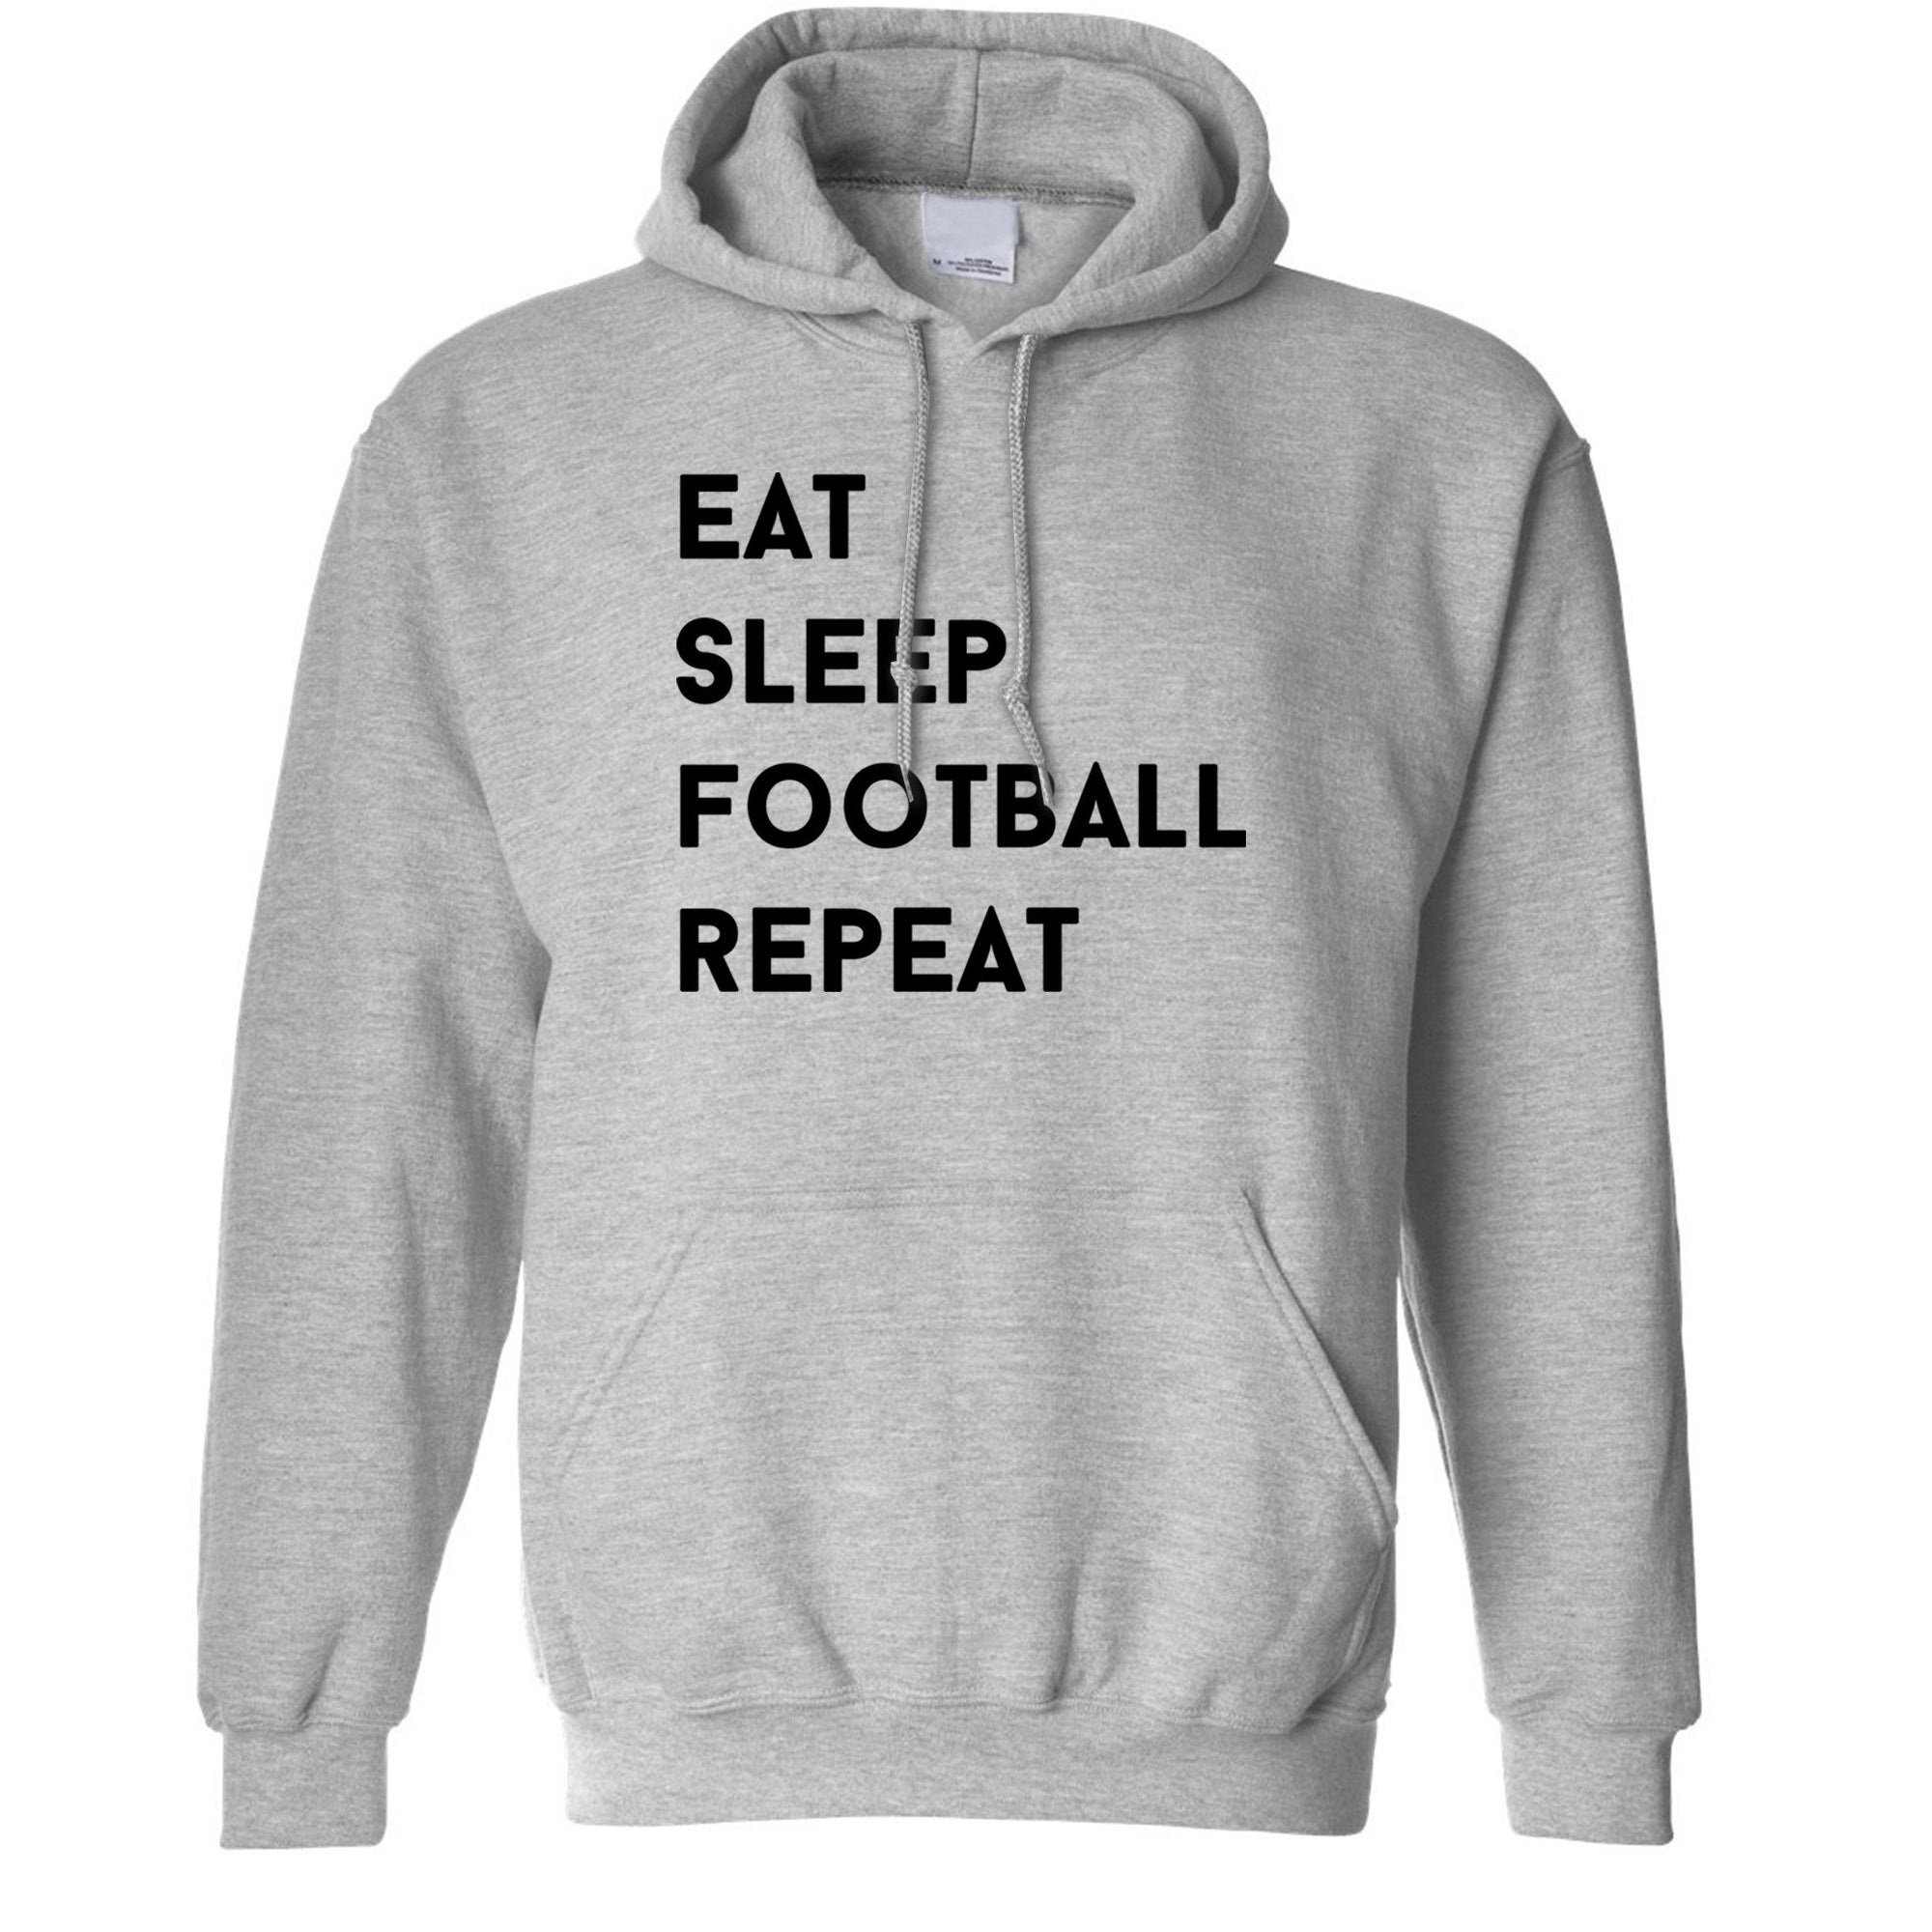 Funny Unisex Hoodie Eat, Sleep, Football, Repeat Slogan